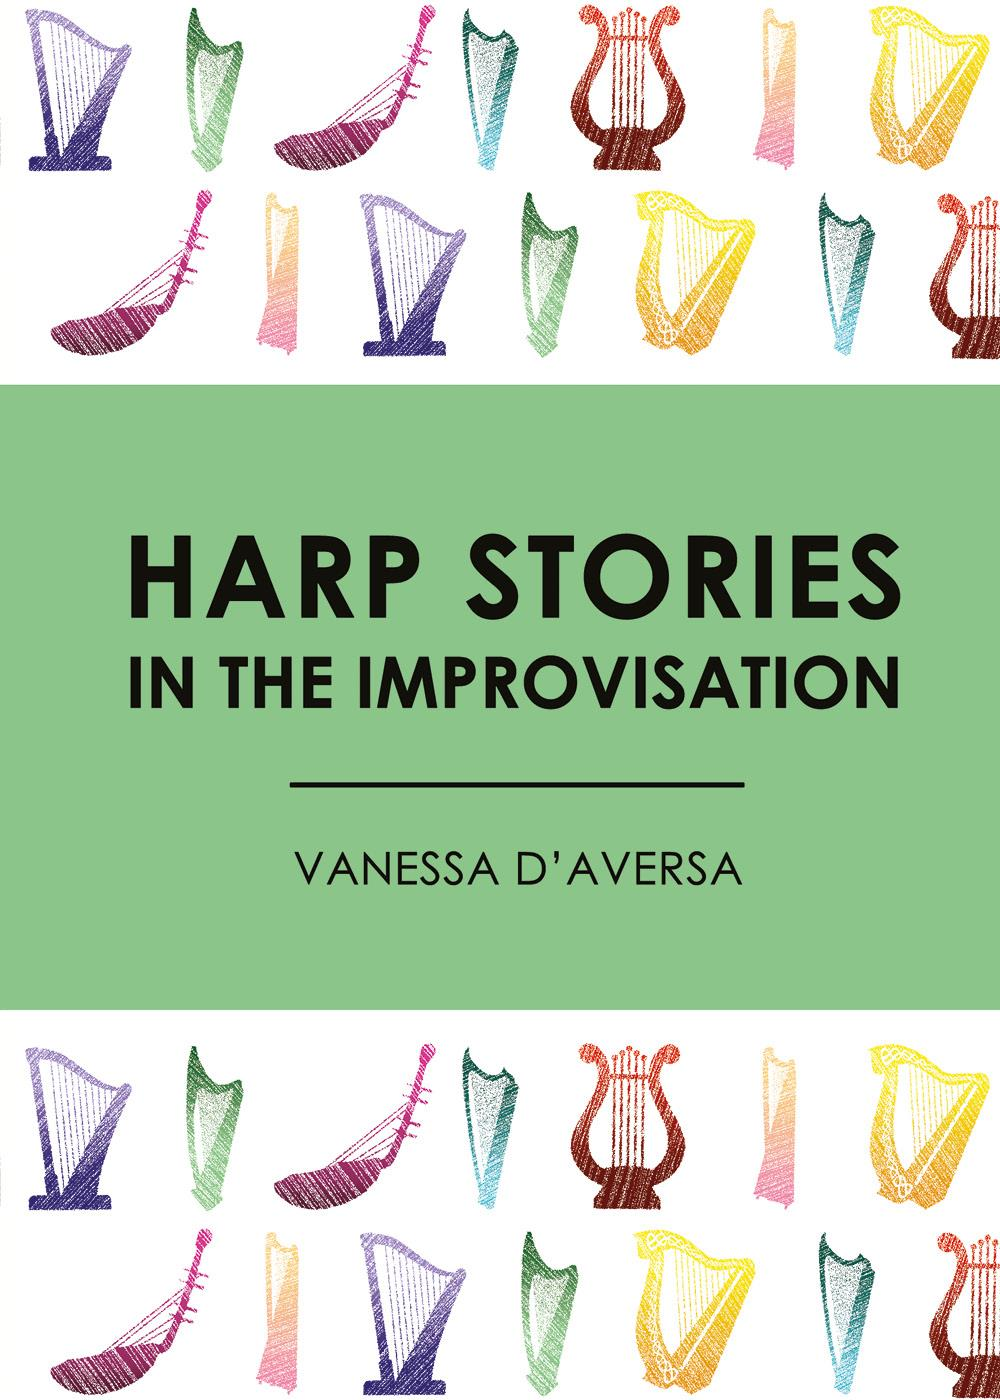 Harp Stories in the Improvisation